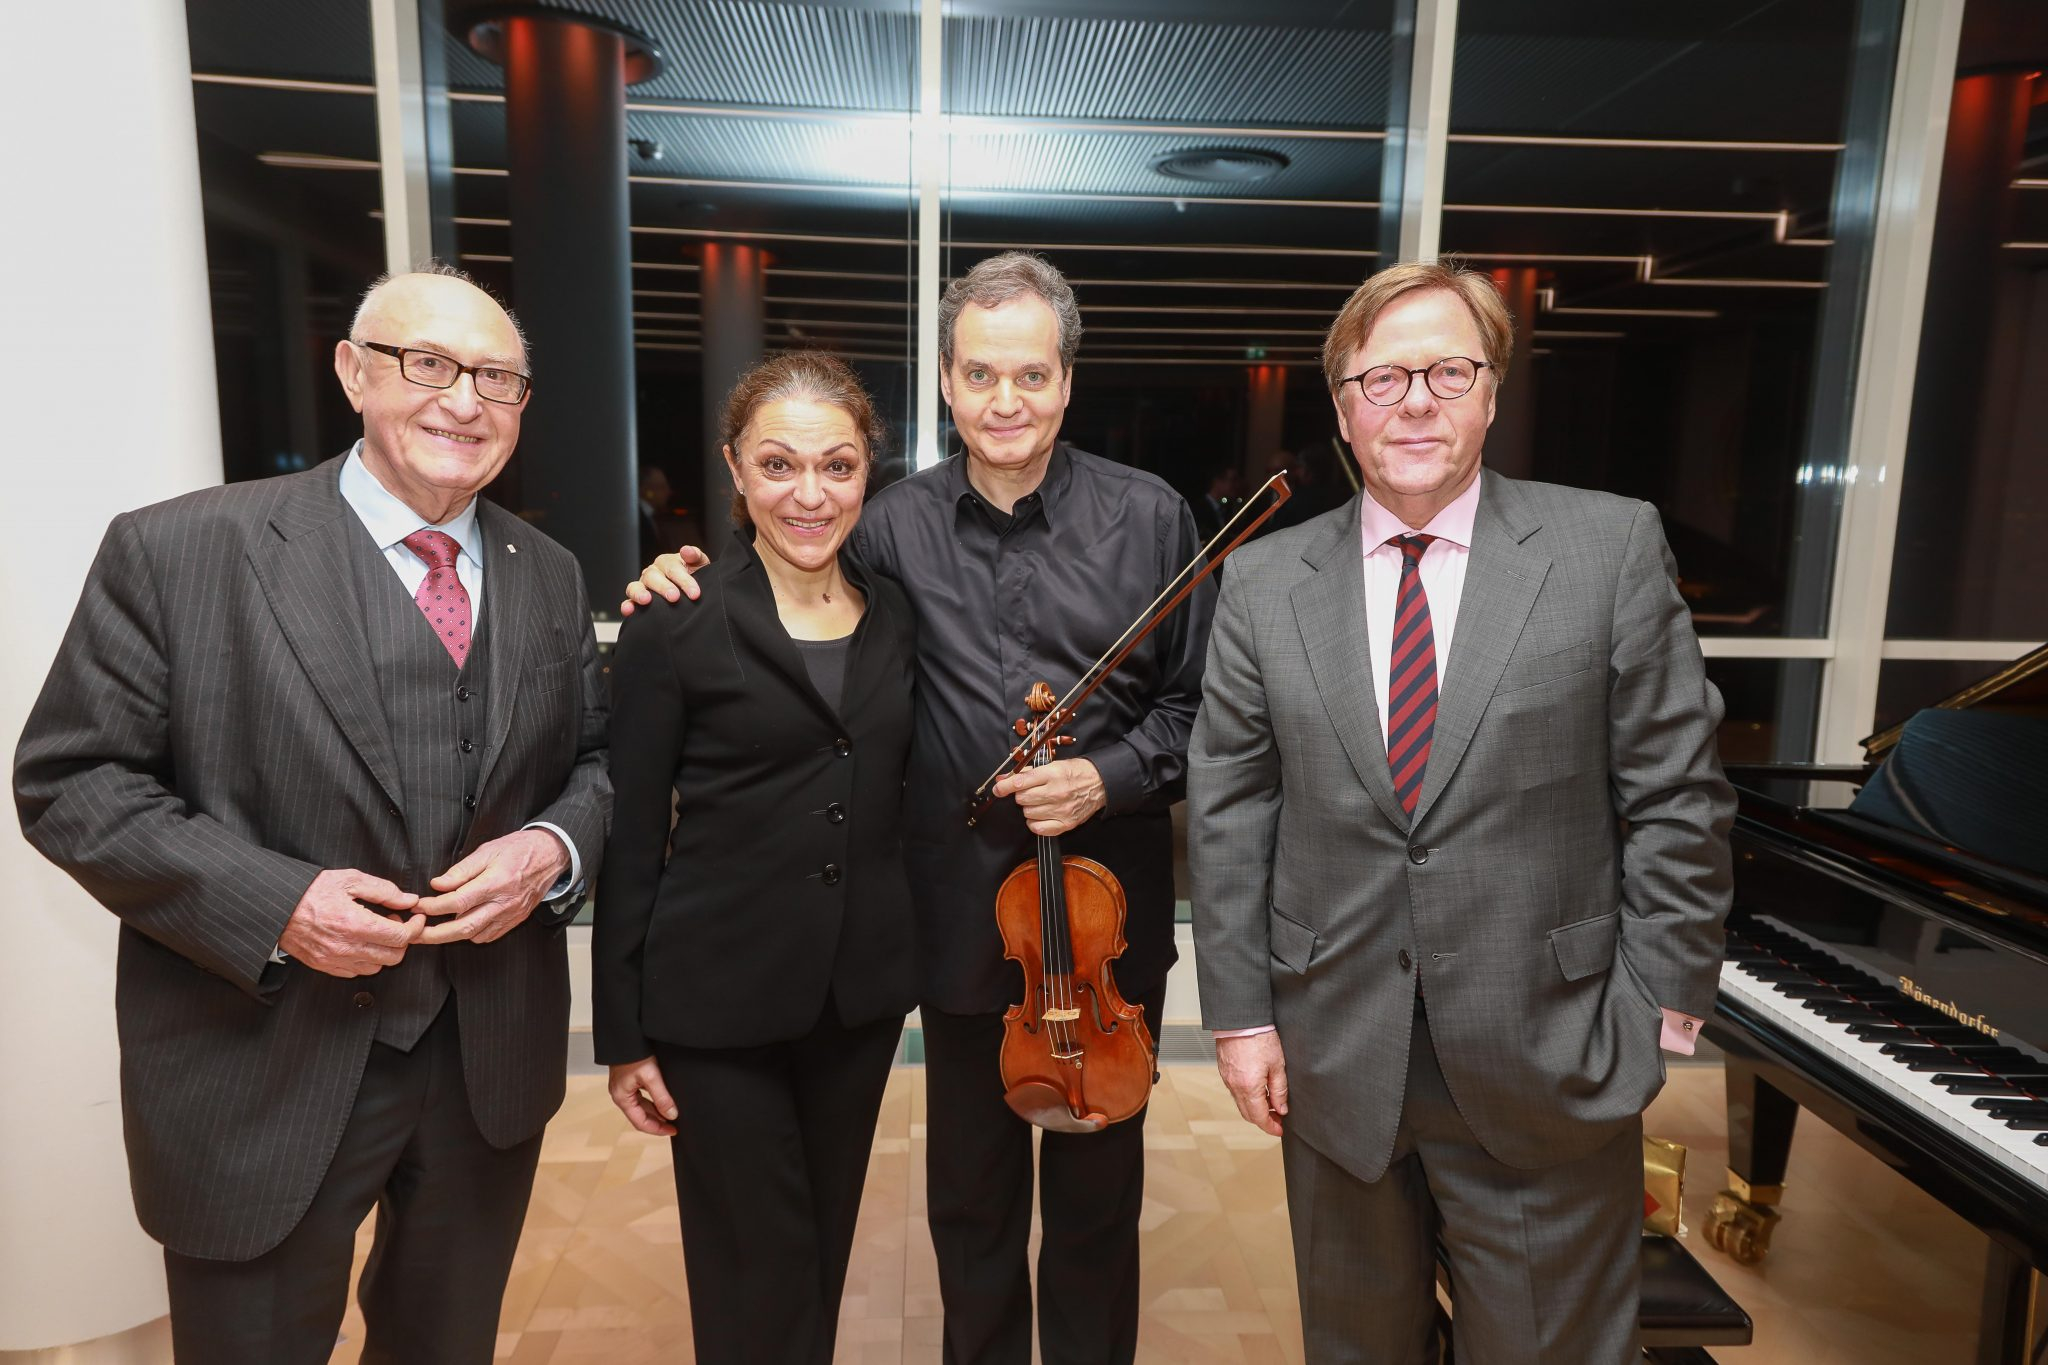 On the picture from left to right: Günter Geyer (Chairman of the Managing Board of Wiener Städtische Versicherungsverein), soloist Jasminka Stančul, violinist Christian Altenburger and Willibald Cernko (Member of the Managing Board of Erste Group). © Wiener Städtische Versicherungsverein